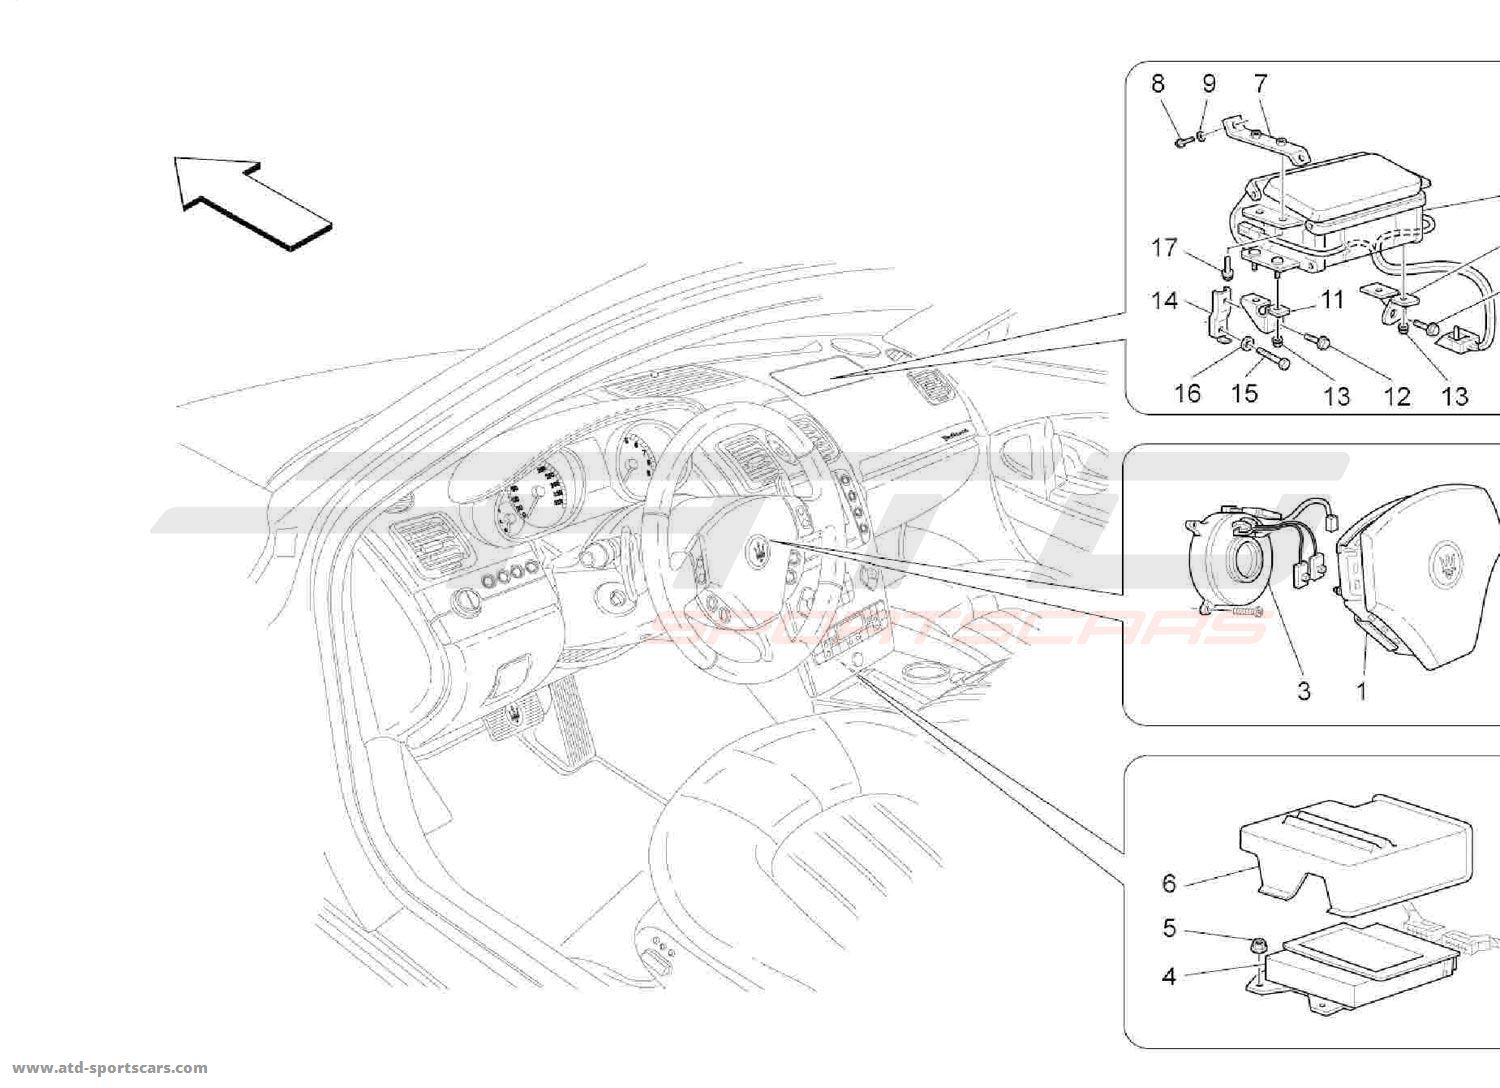 Isuzu Trooper Air Conditioning Diagram Wiring Harness BMW